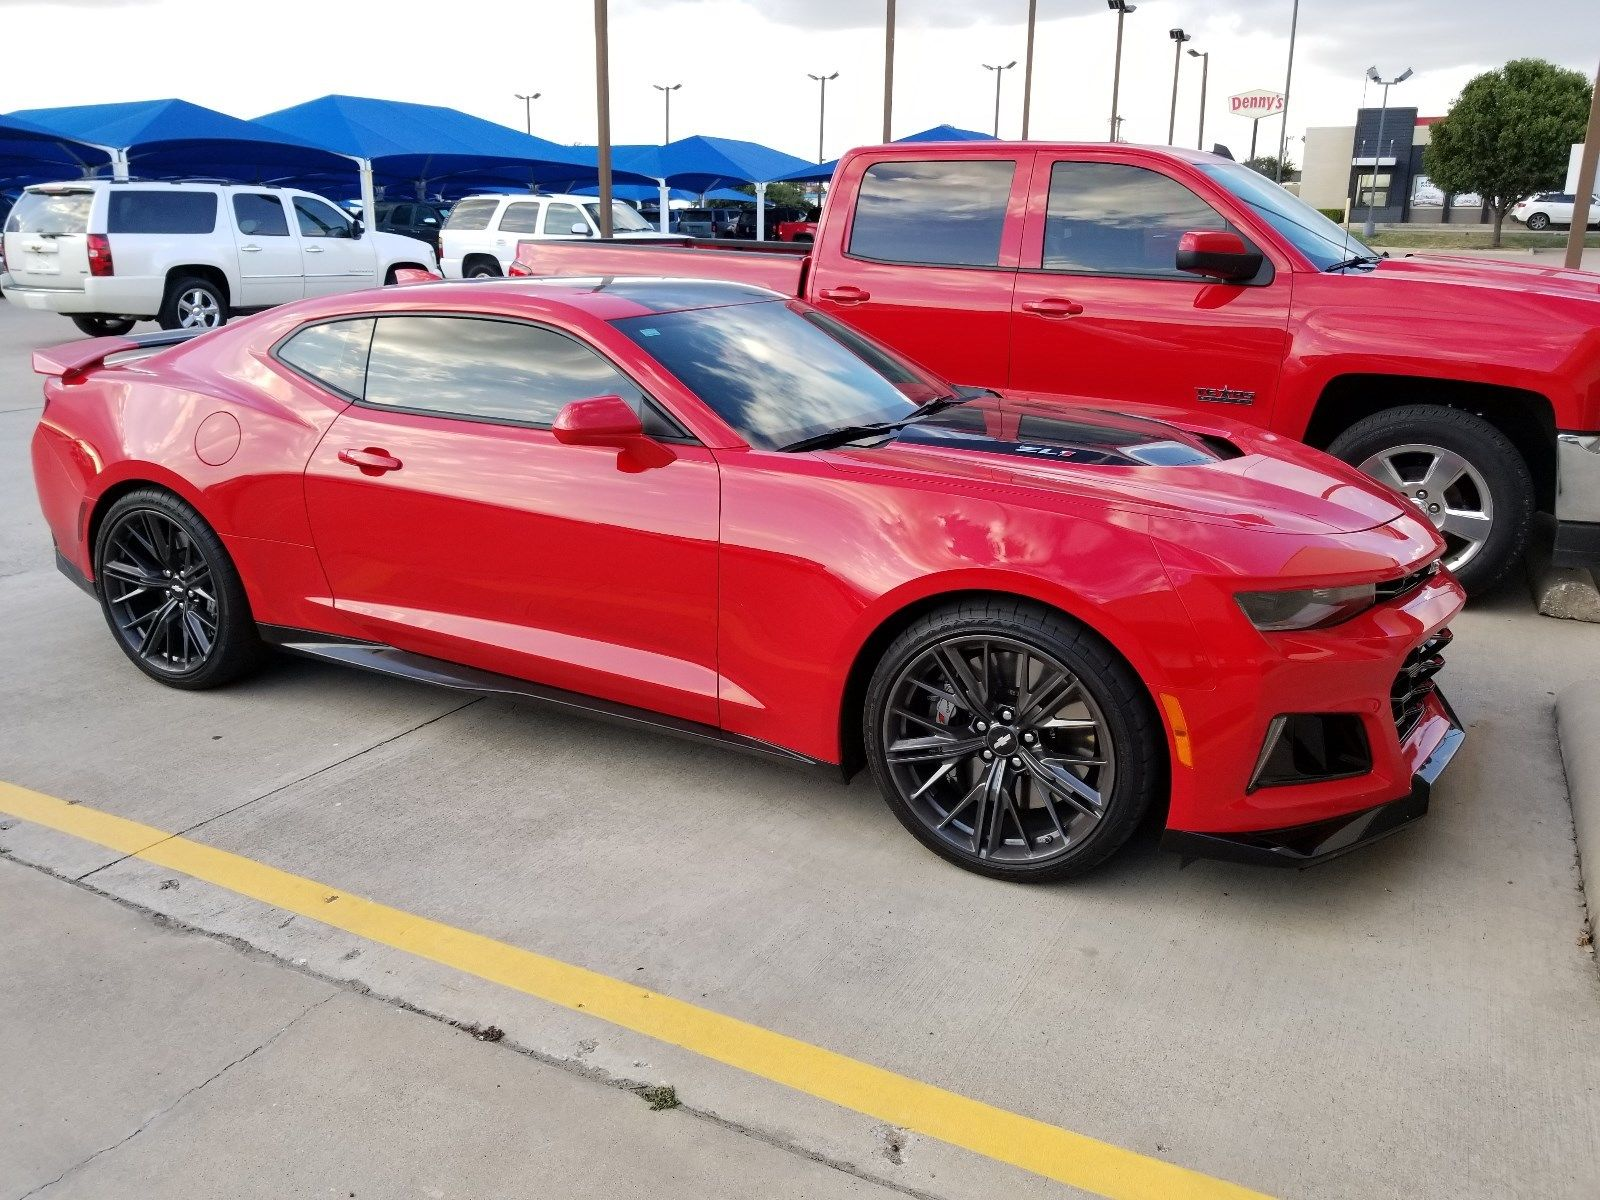 Amazing 2017 Chevrolet Camaro Zl1 Coupe Red Hot Beautiful Car 2018